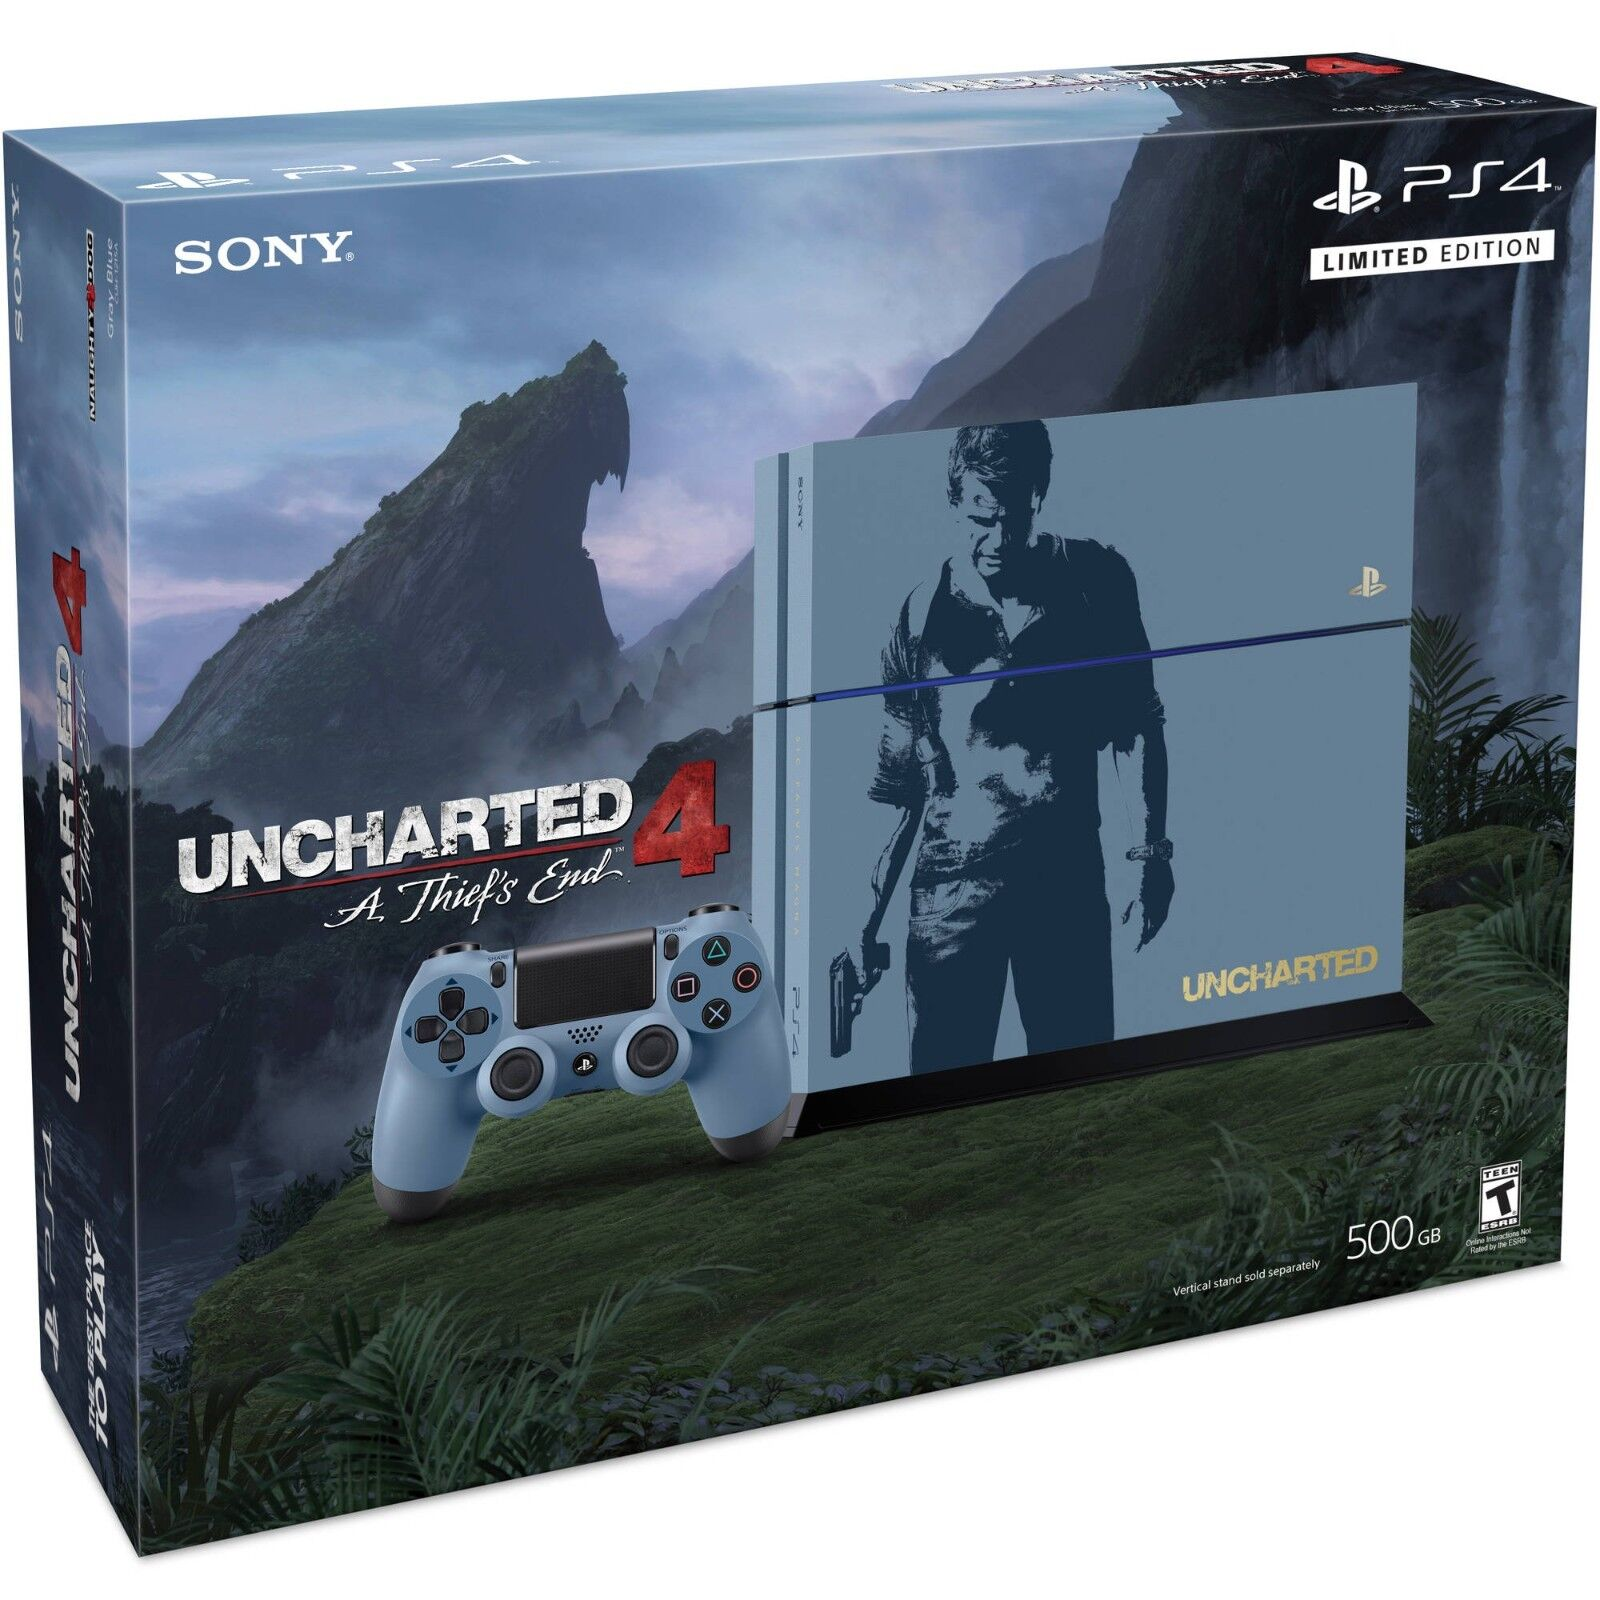 Playstation 4 - PlayStation 4 500GB Console - Uncharted 4 Limited Edition Bundle NEW